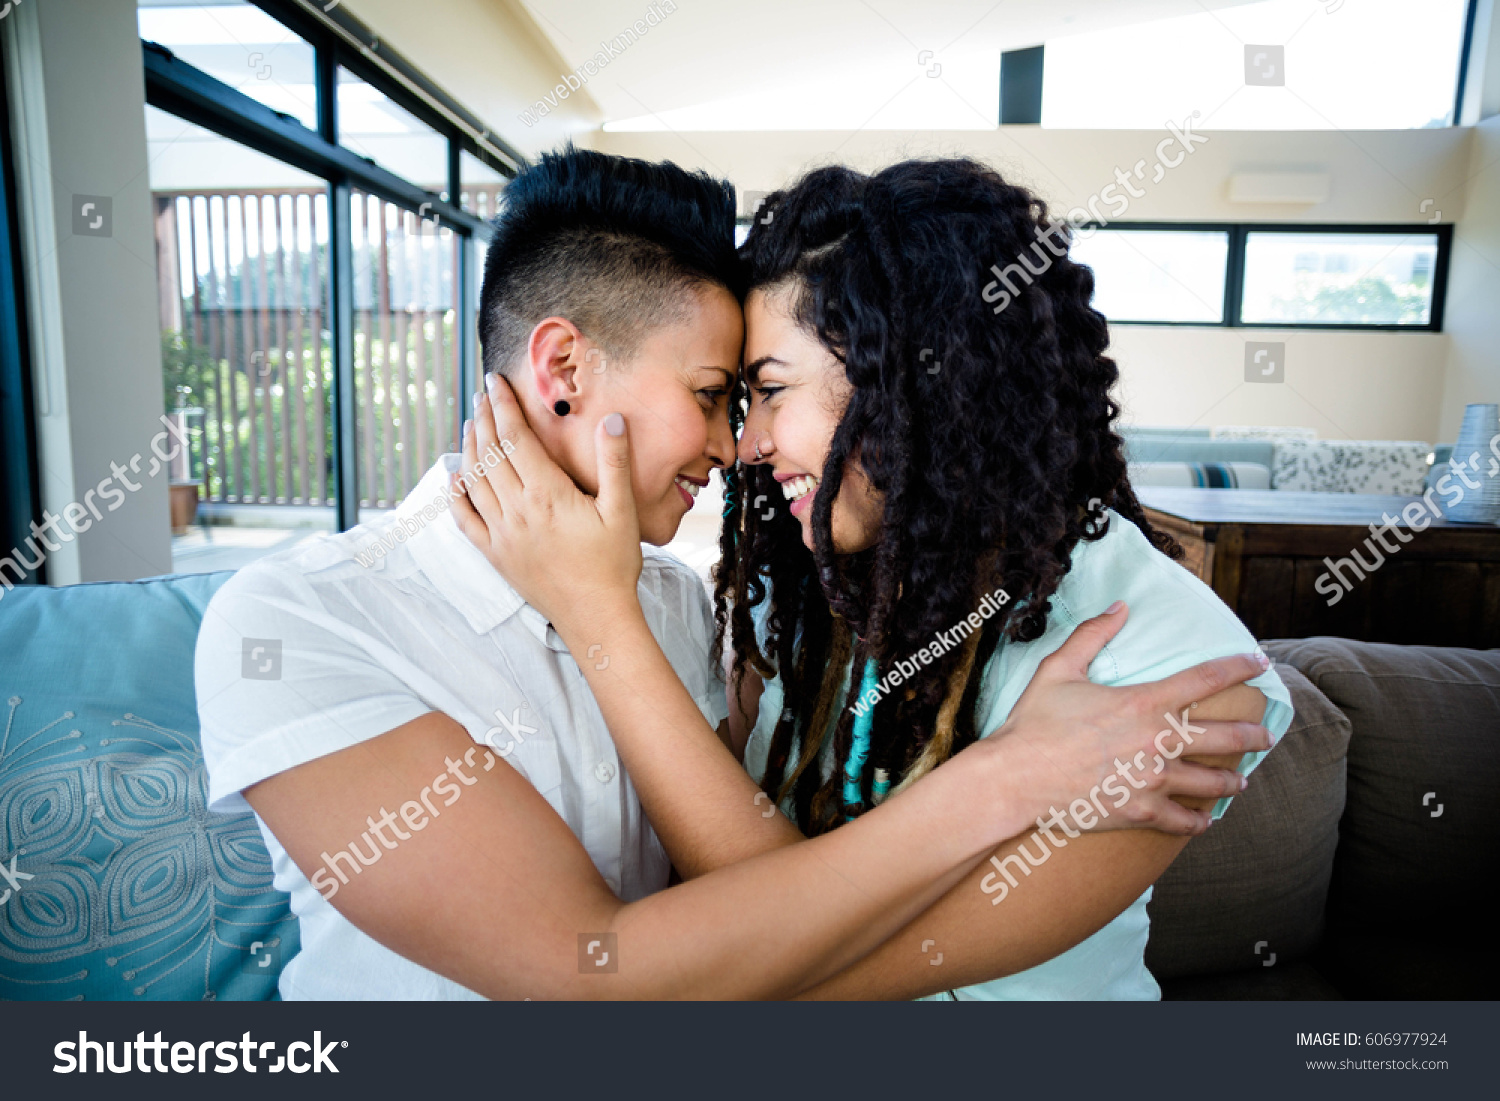 Lesbian couple embracing each other on sofa in living room